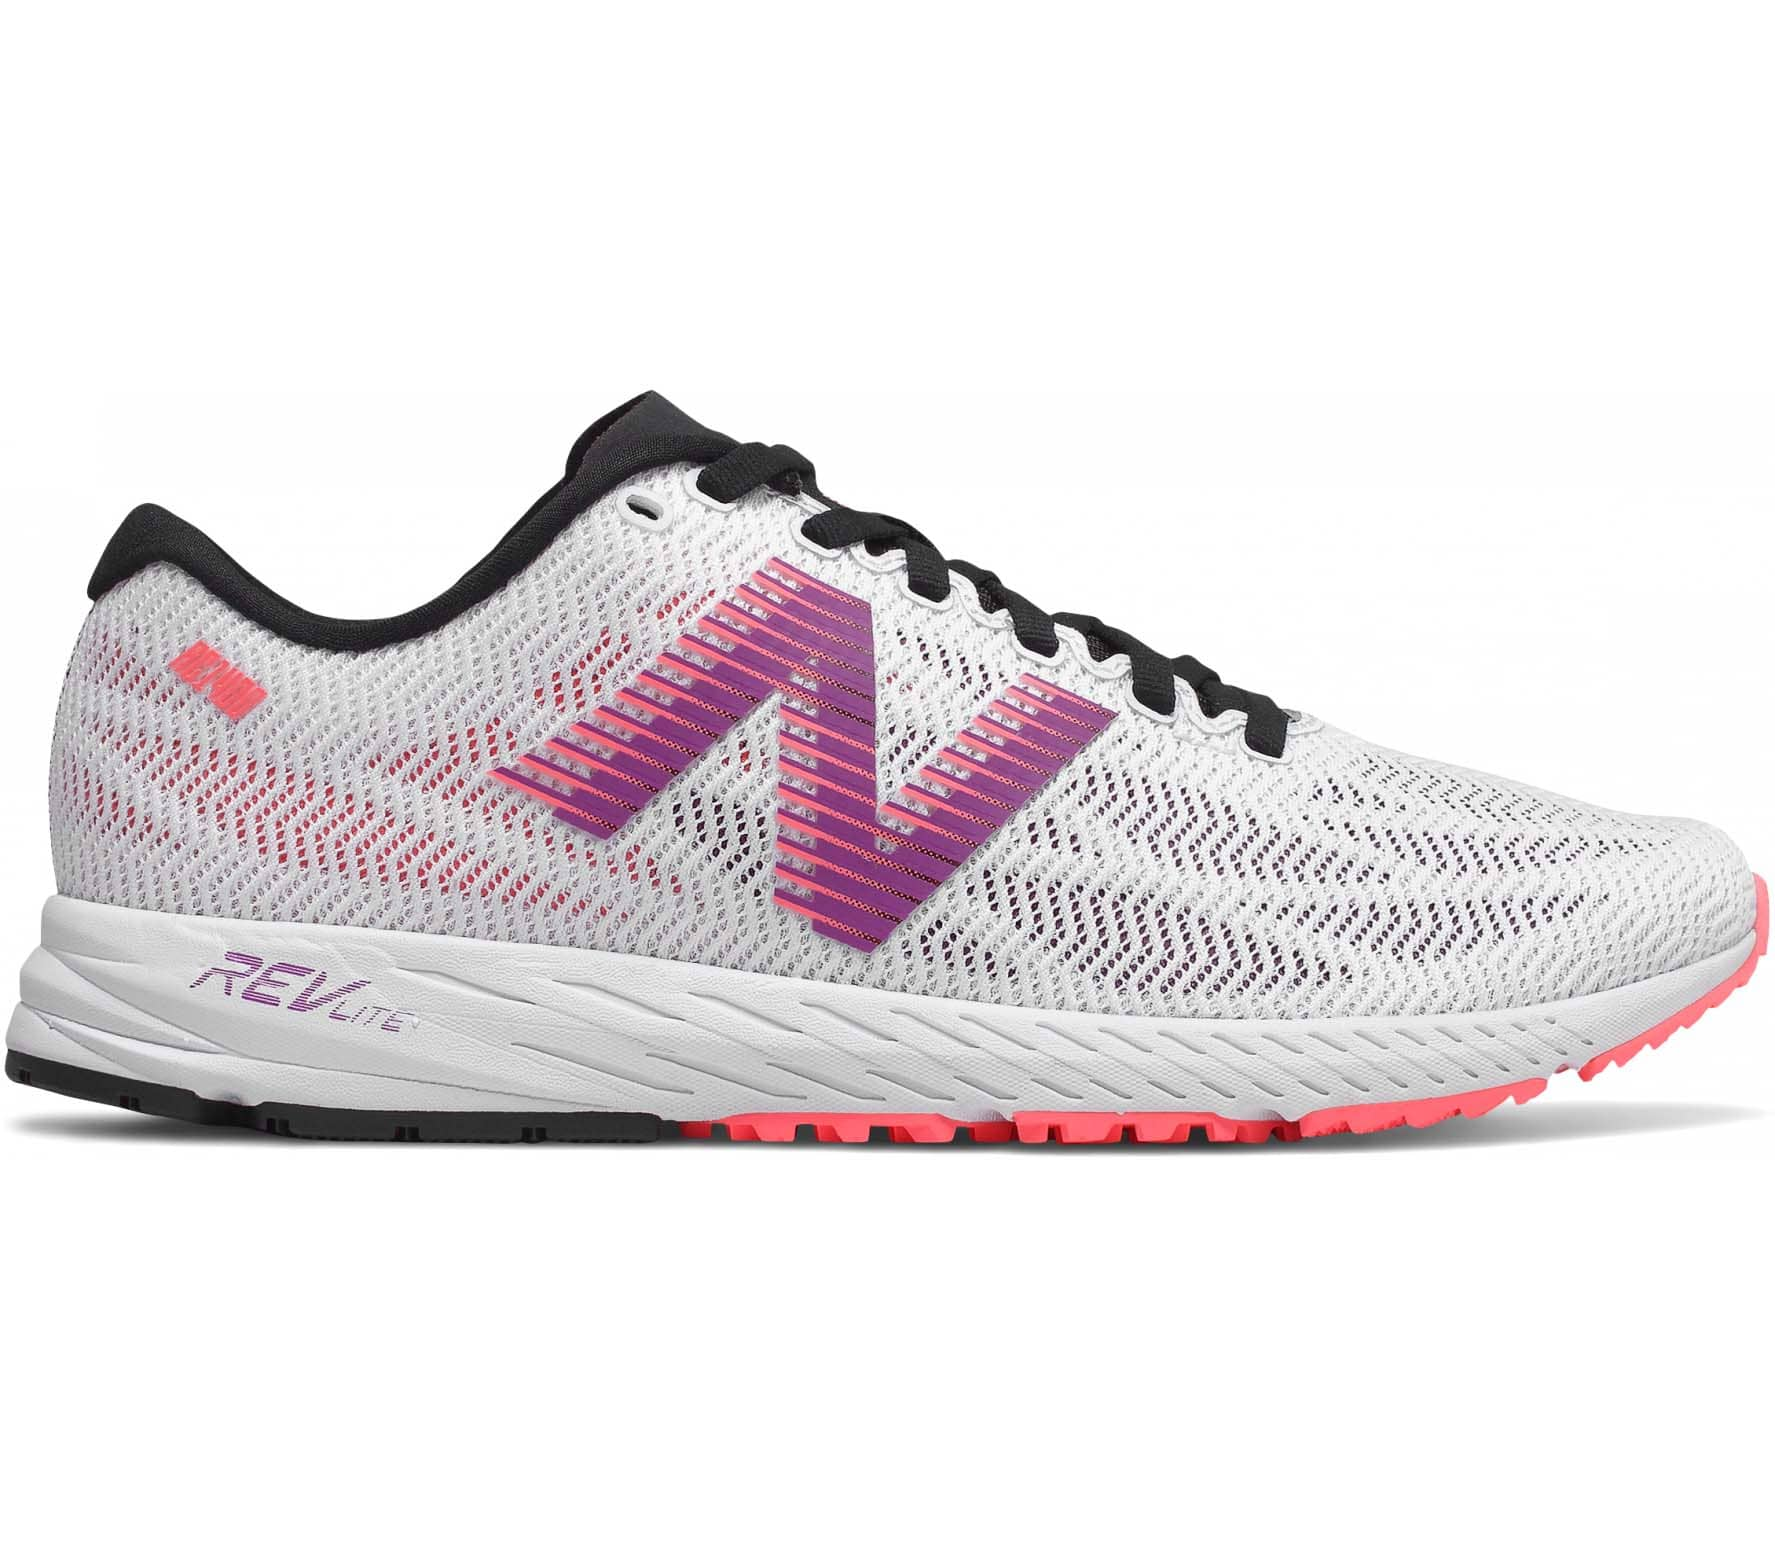 New Balance 1400 v6 Women purple